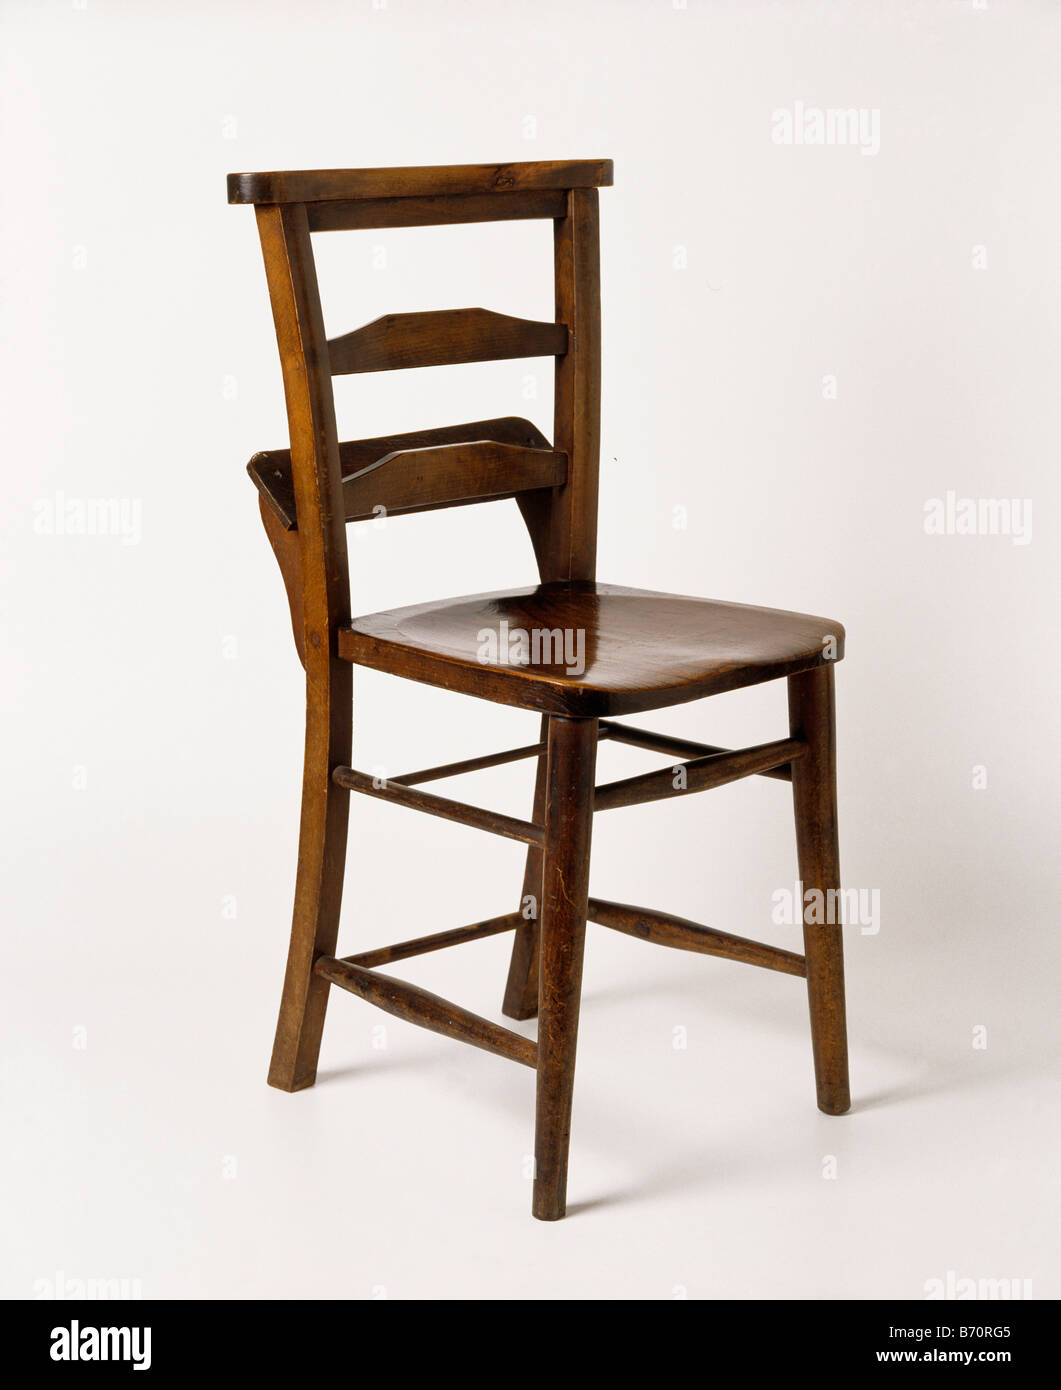 Antique wooden chair - Close Up Of Antique Victorian Wooden Chair Stock Image